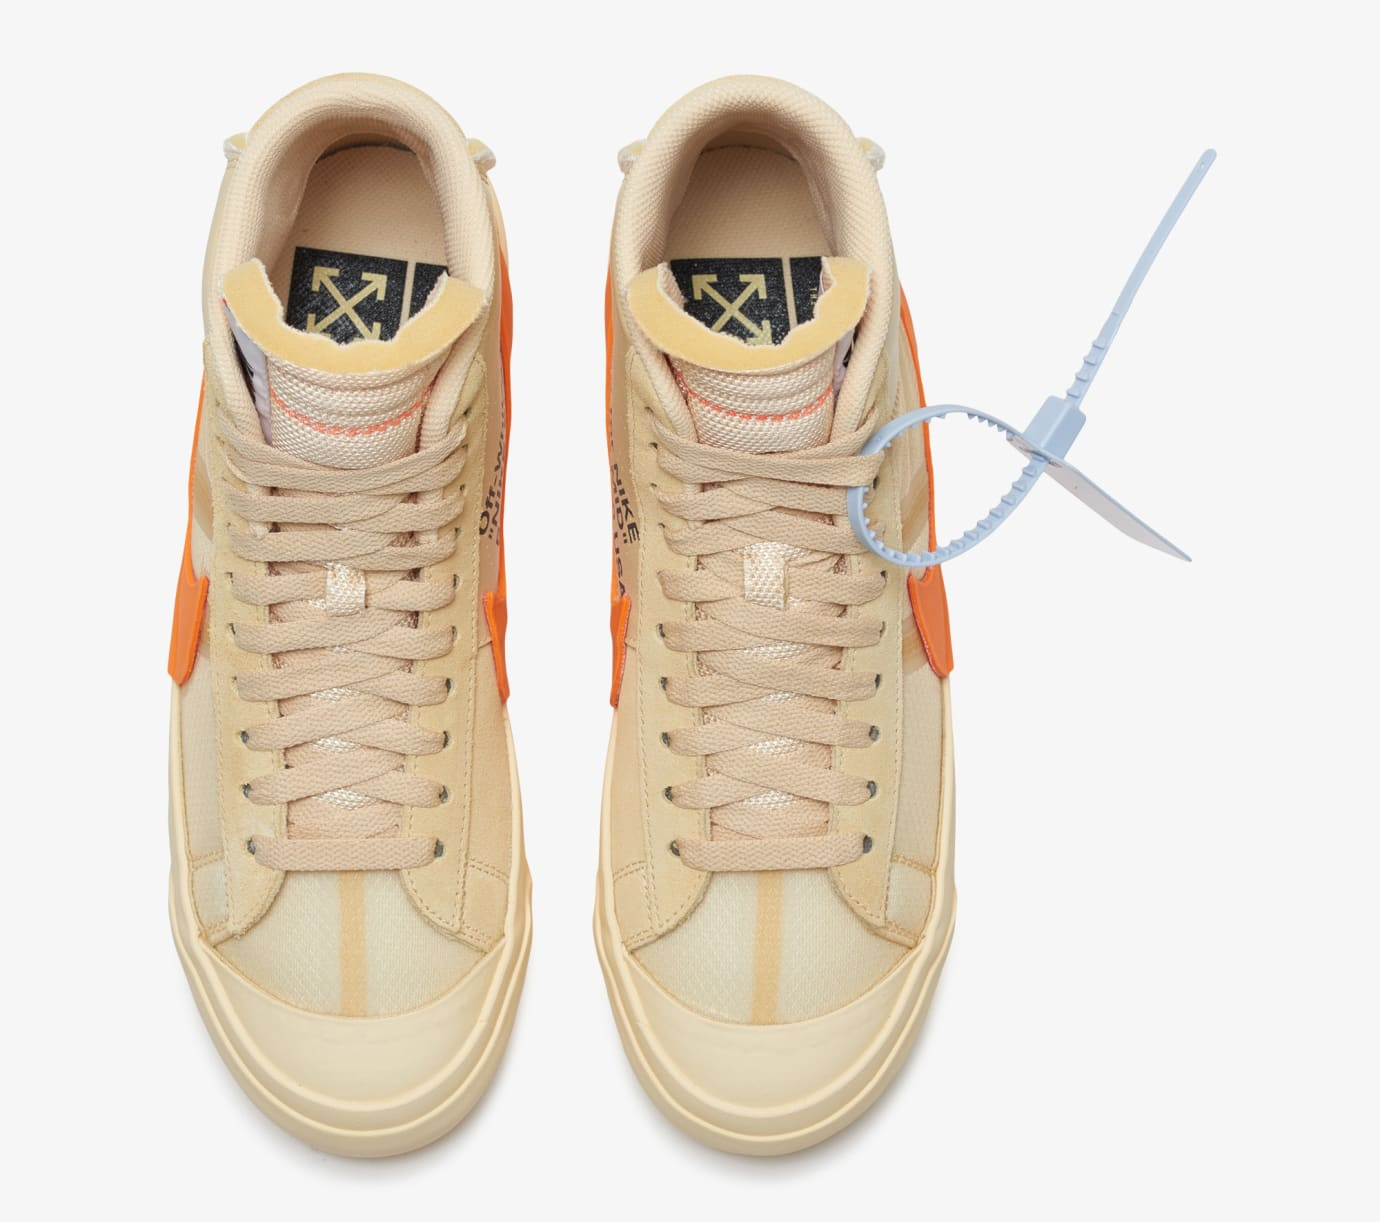 Off-White x Nike Blazer 'All Hallows' Eve' AA3832-700 (Top)